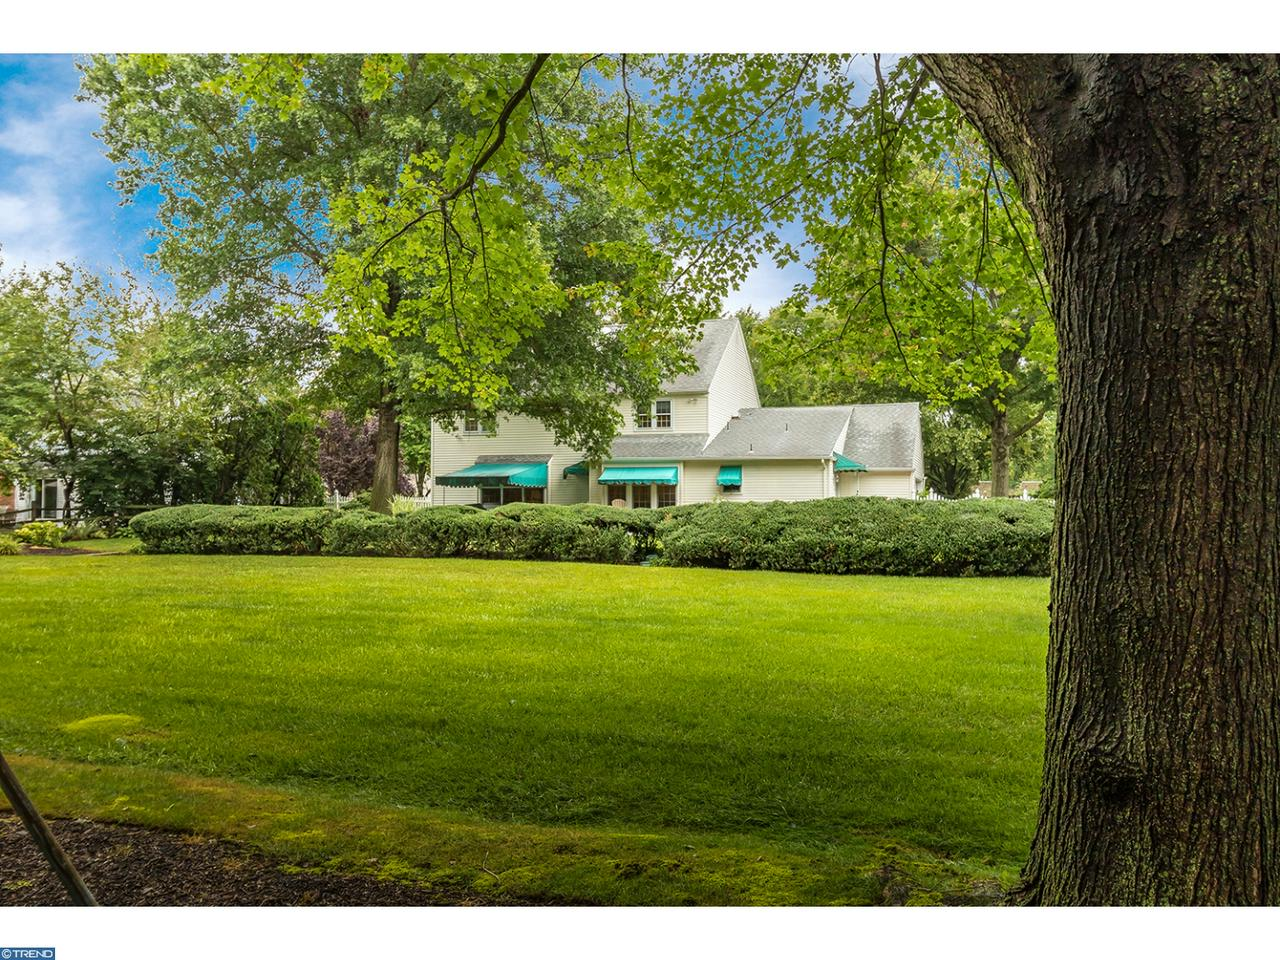 Pennsylvania Real Estate Listings Pa Home Property Search